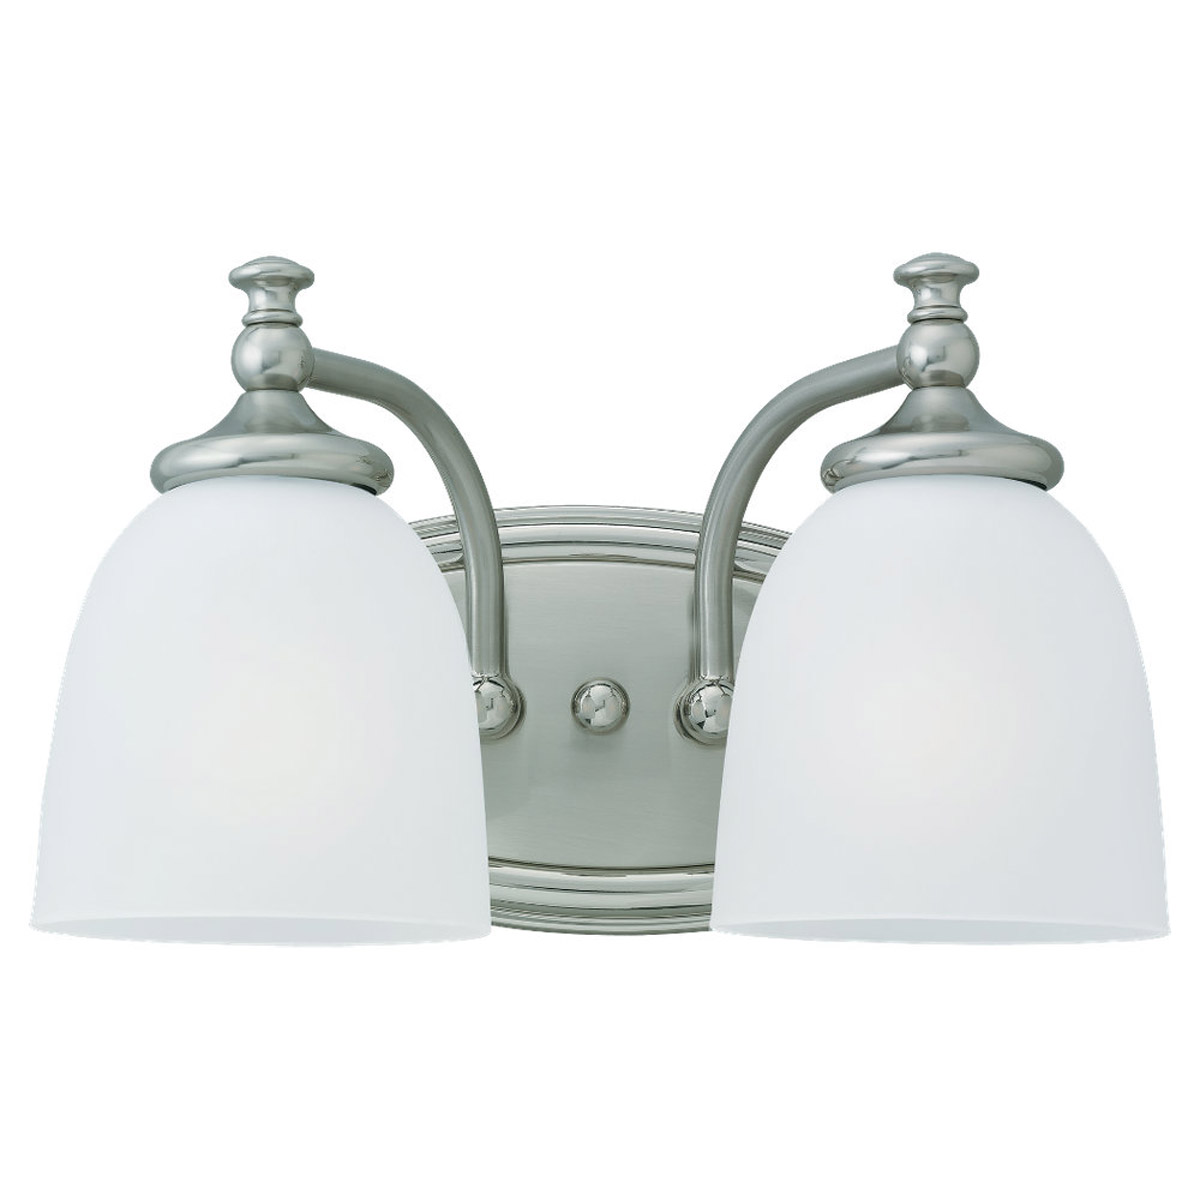 Sea Gull Lighting Colonnade 2 Light Wall / Bath / Vanity in Two Tone Nickel 44276-773